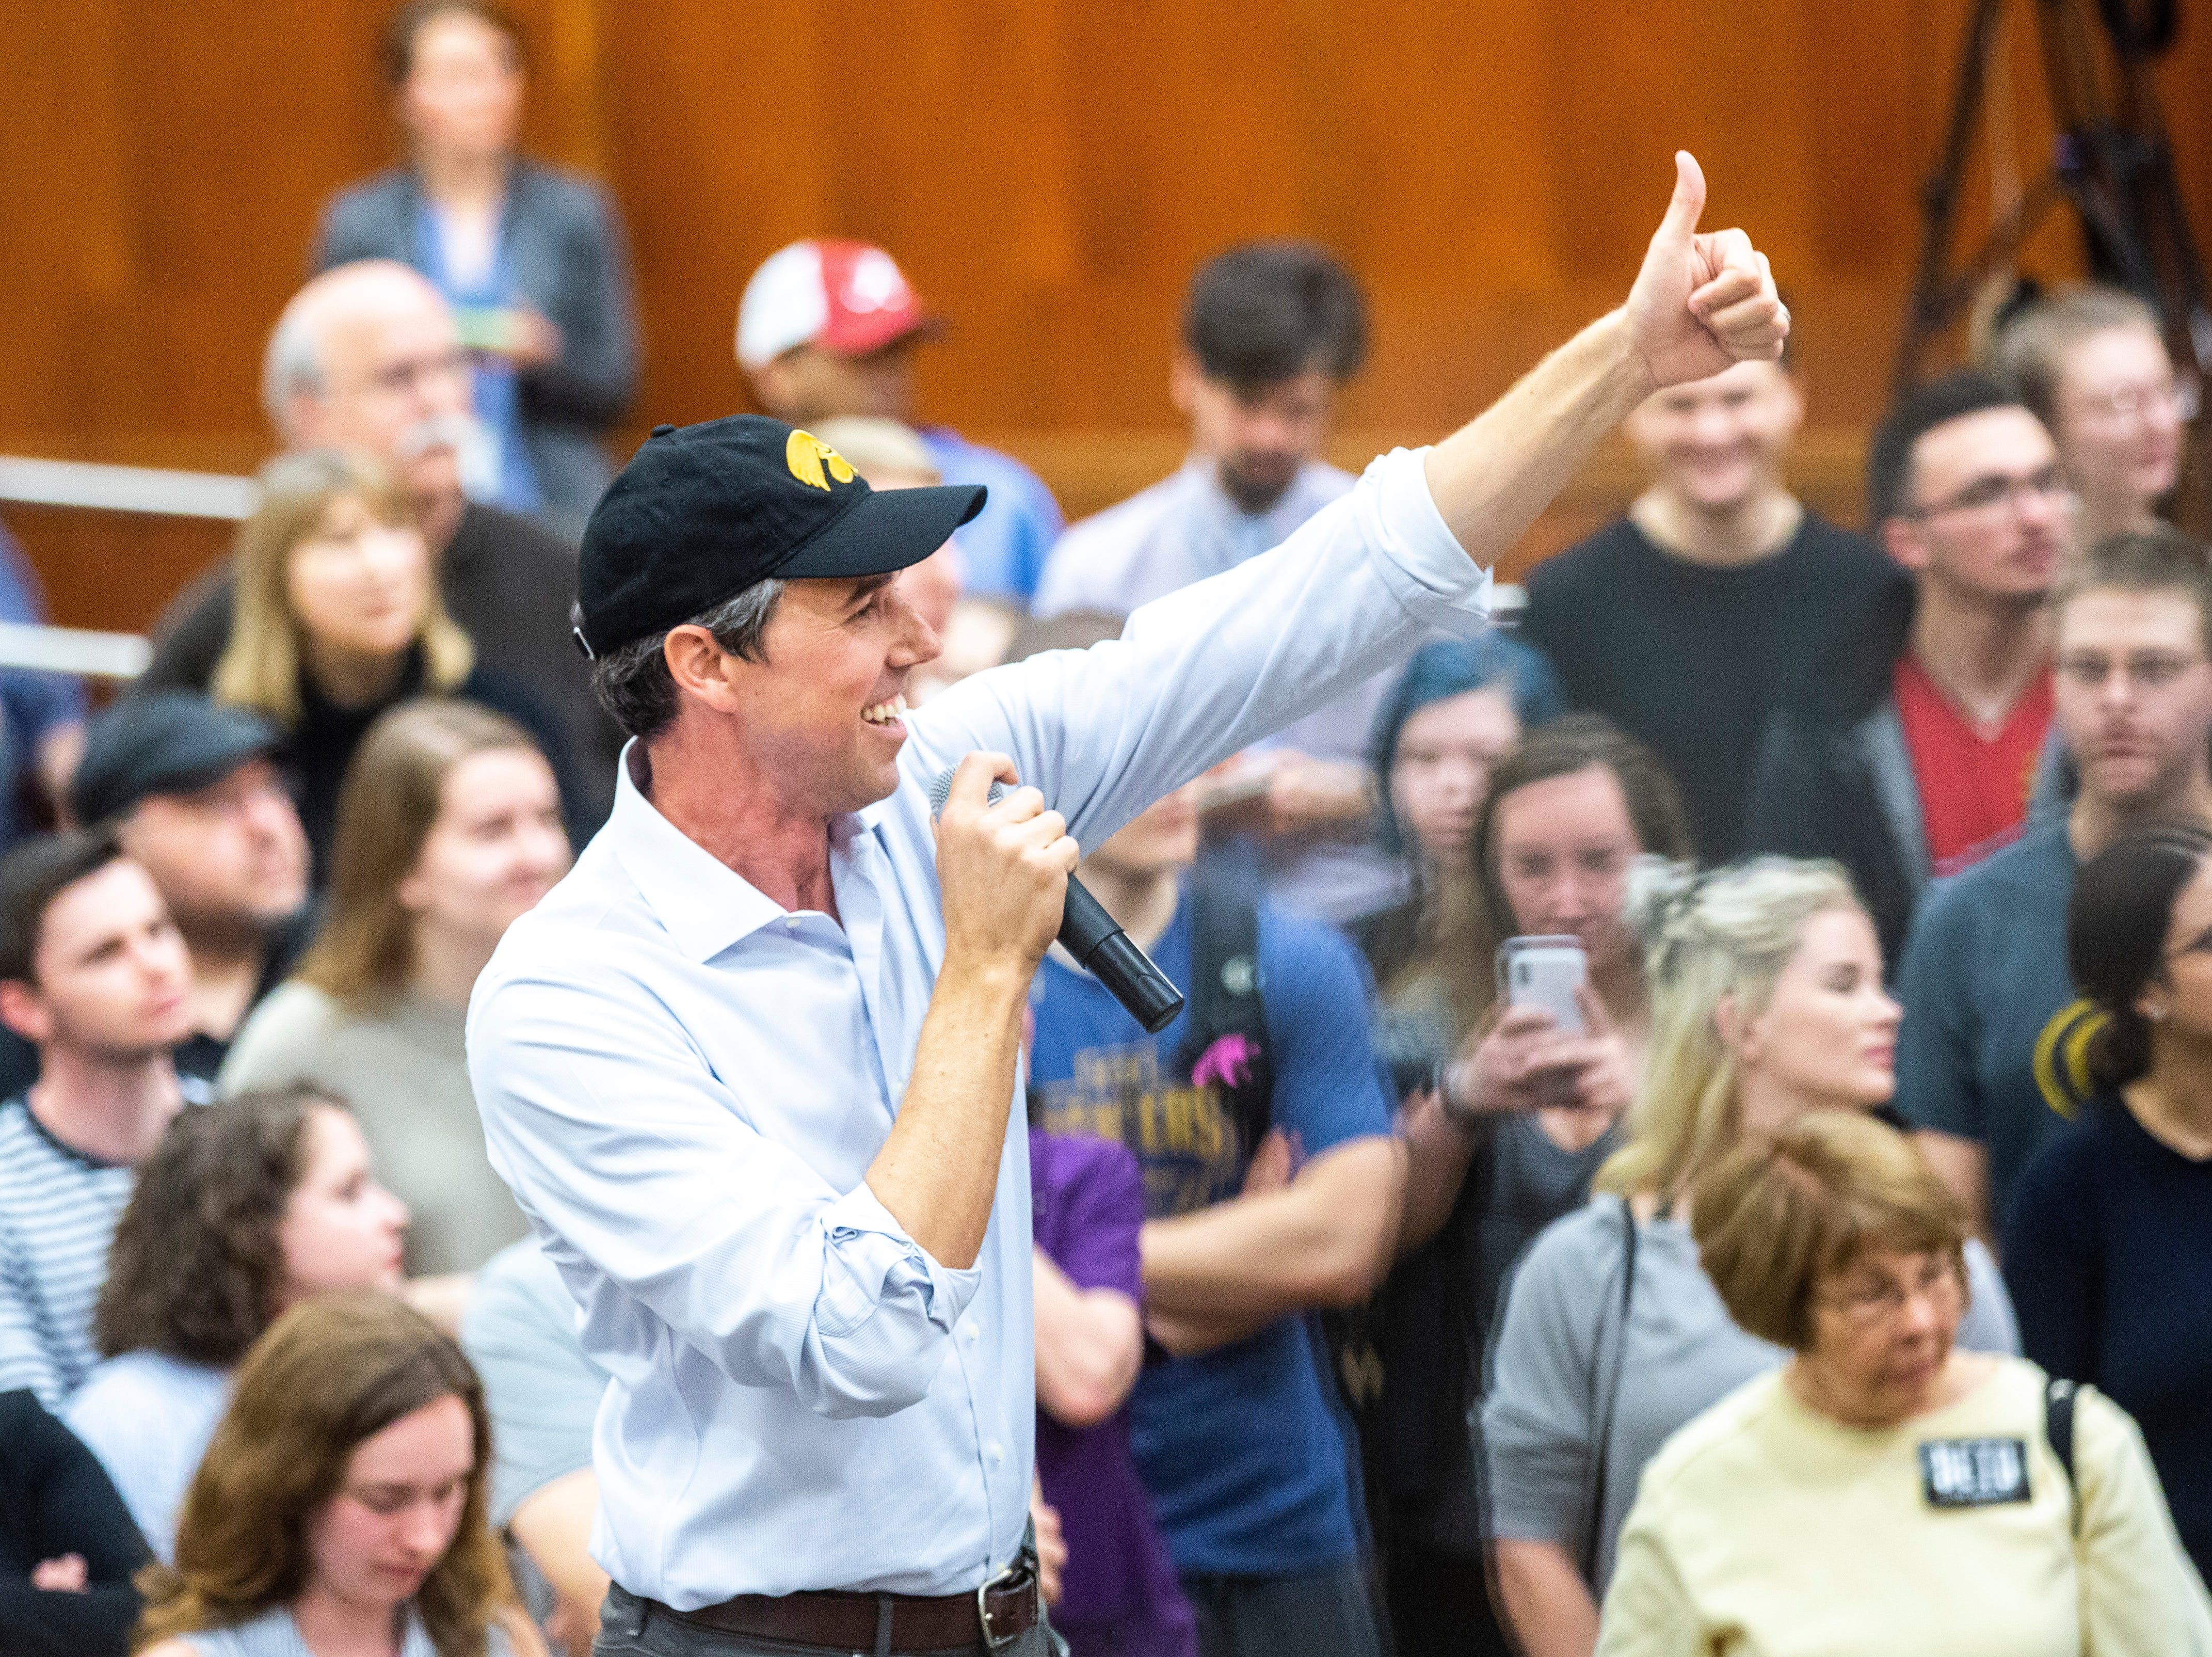 Democratic presidential candidate Beto O'Rourke of El Paso, Texas, acknowledges a member of the crowd during a town hall event on Sunday, April 7, 2019, in the second floor ballroom at the Iowa Memorial Union on the University of Iowa campus in Iowa City, Iowa.